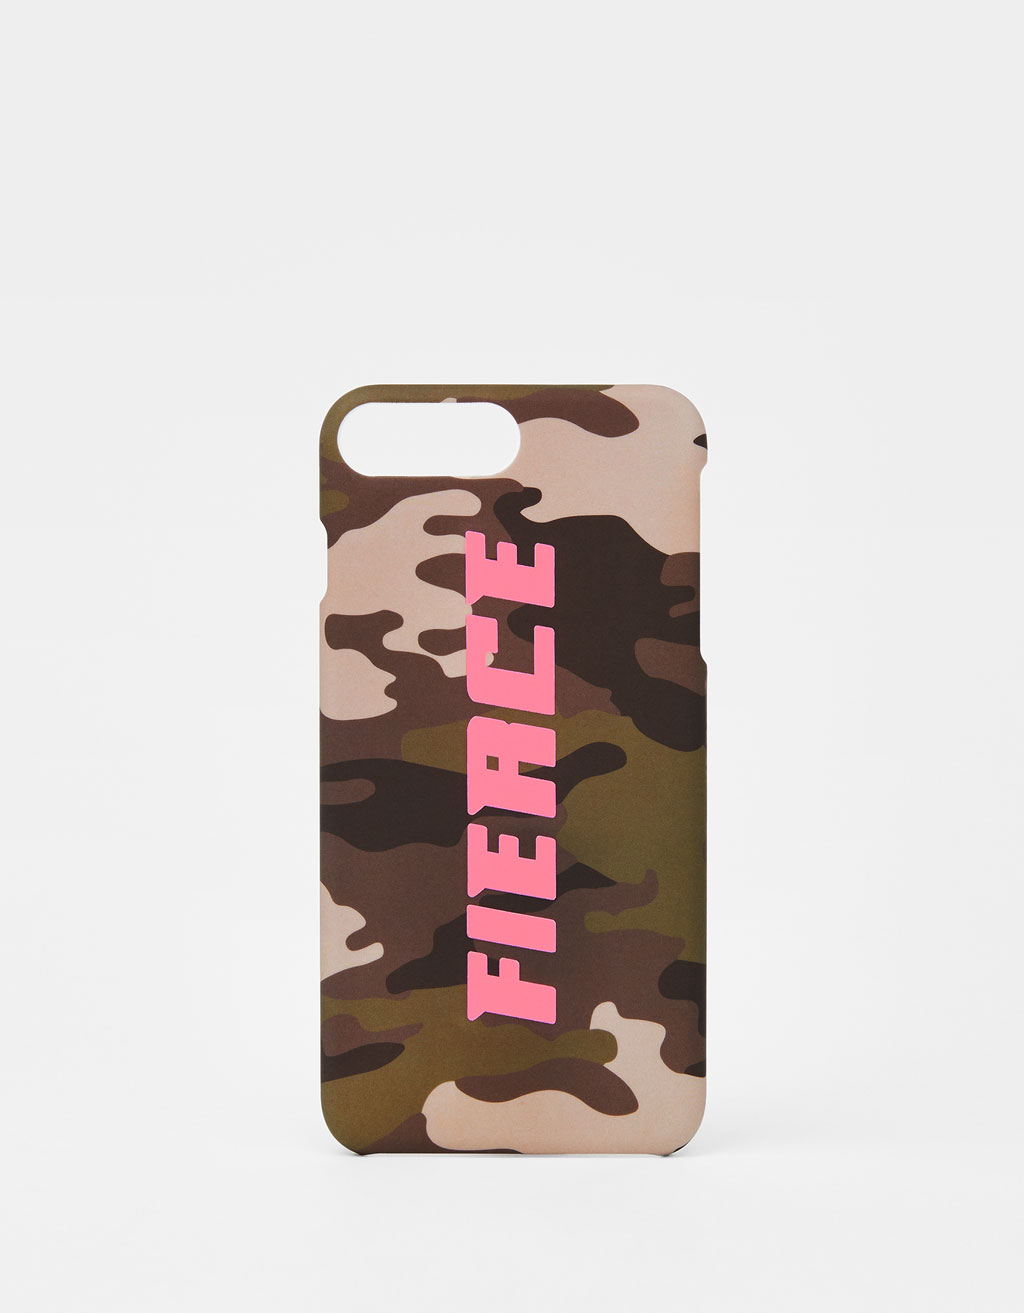 Carcasa camuflaje iPhone 6 plus / 7 plus / 8 plus